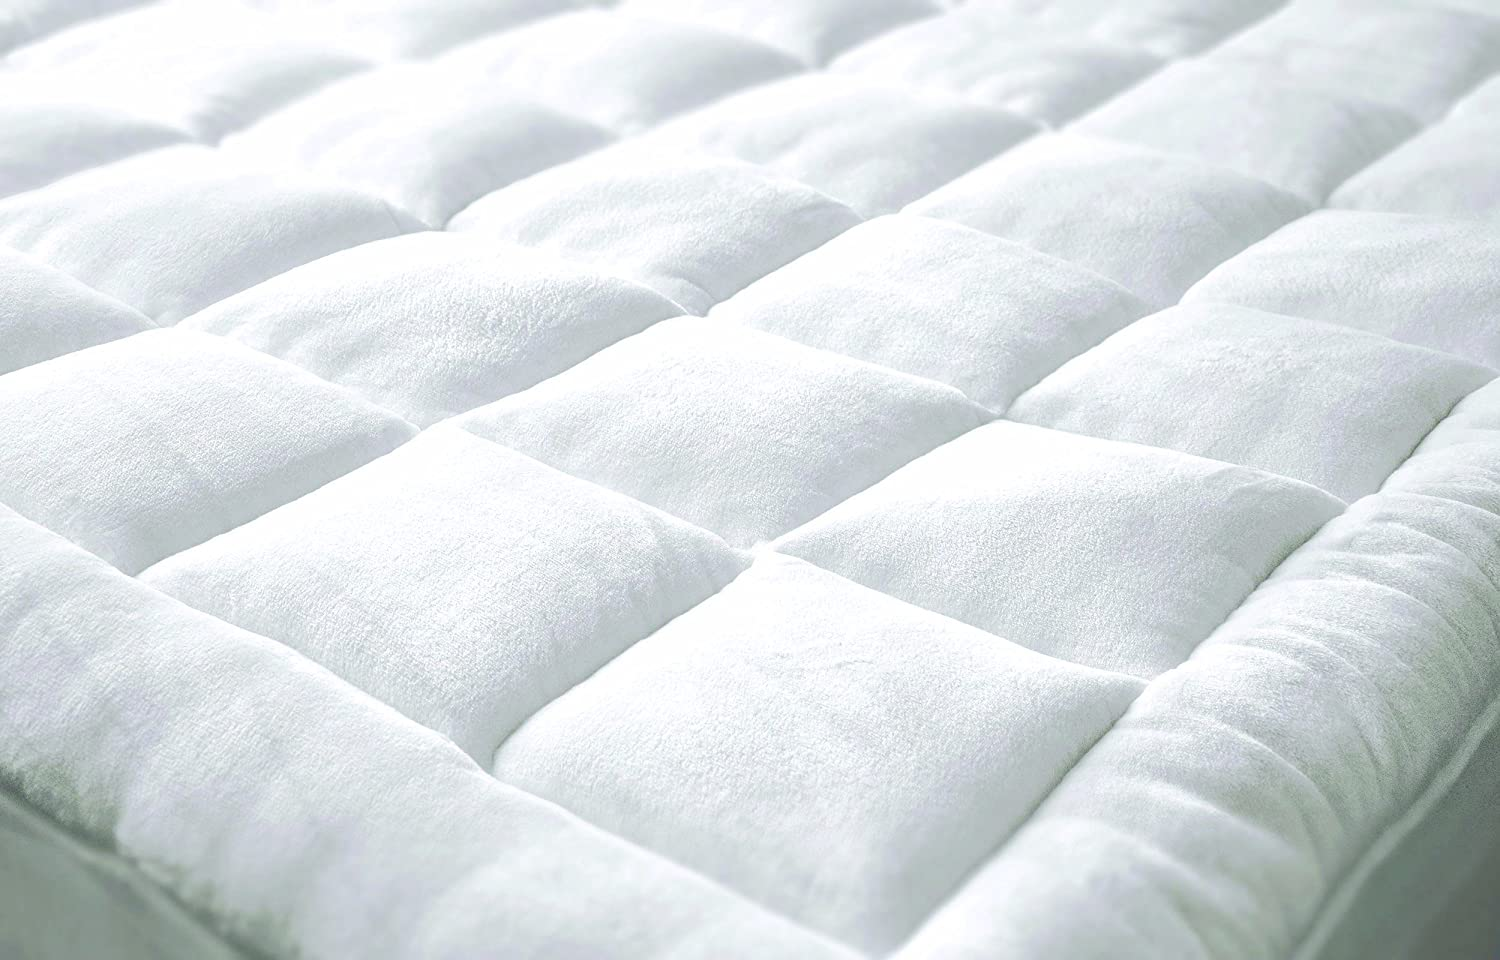 P&R Bedding Ultrasoft Microplush White Mattress Pad in Various Sizes